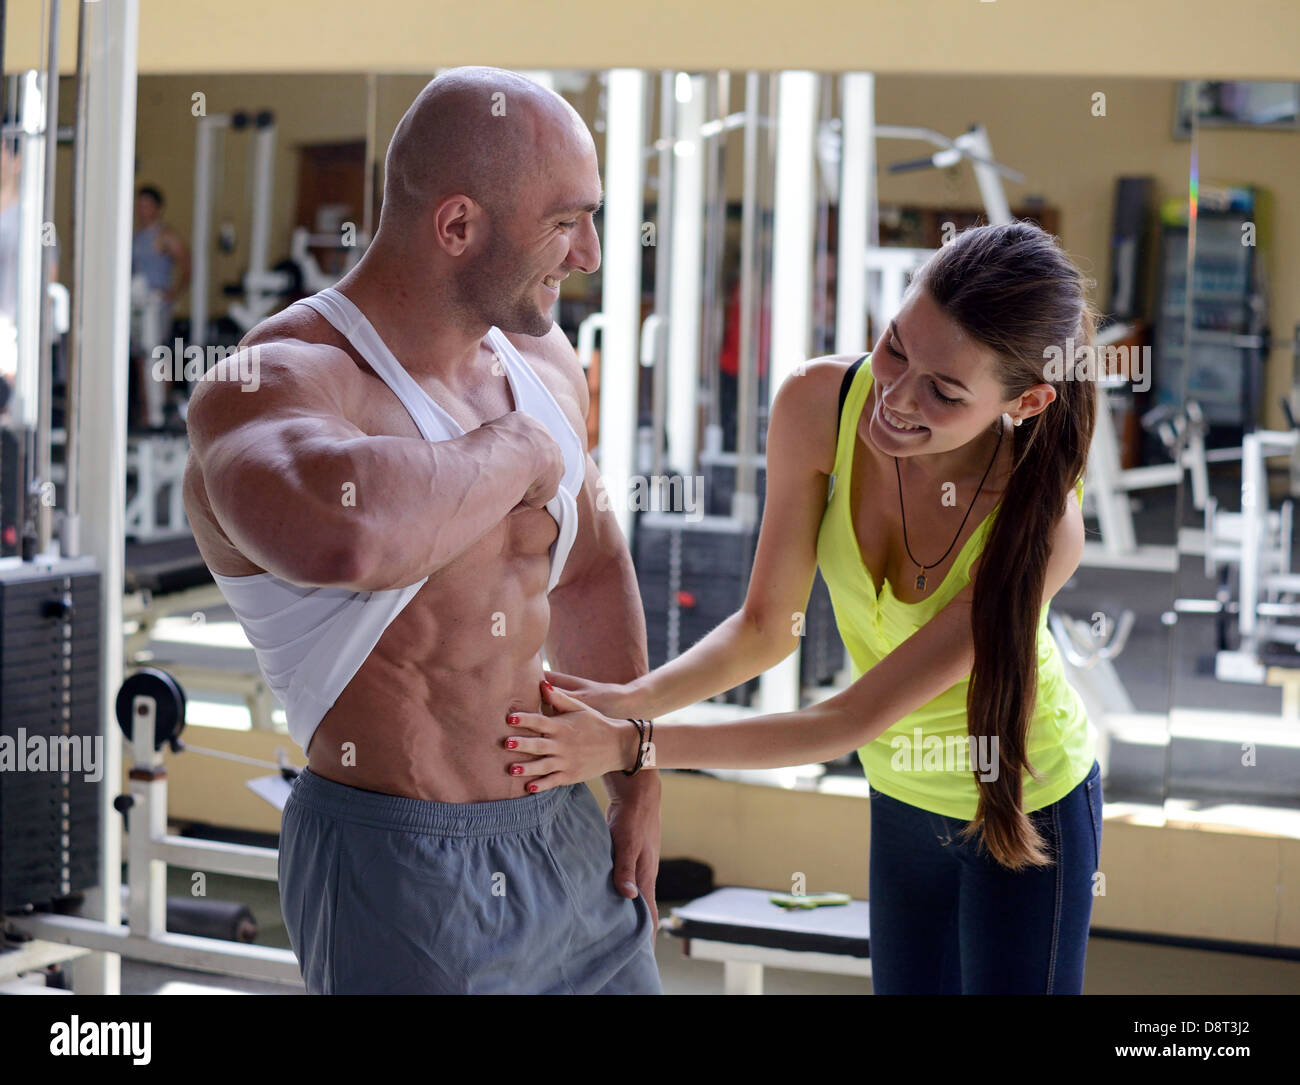 woman checks abdominal muscles athlete - Stock Image